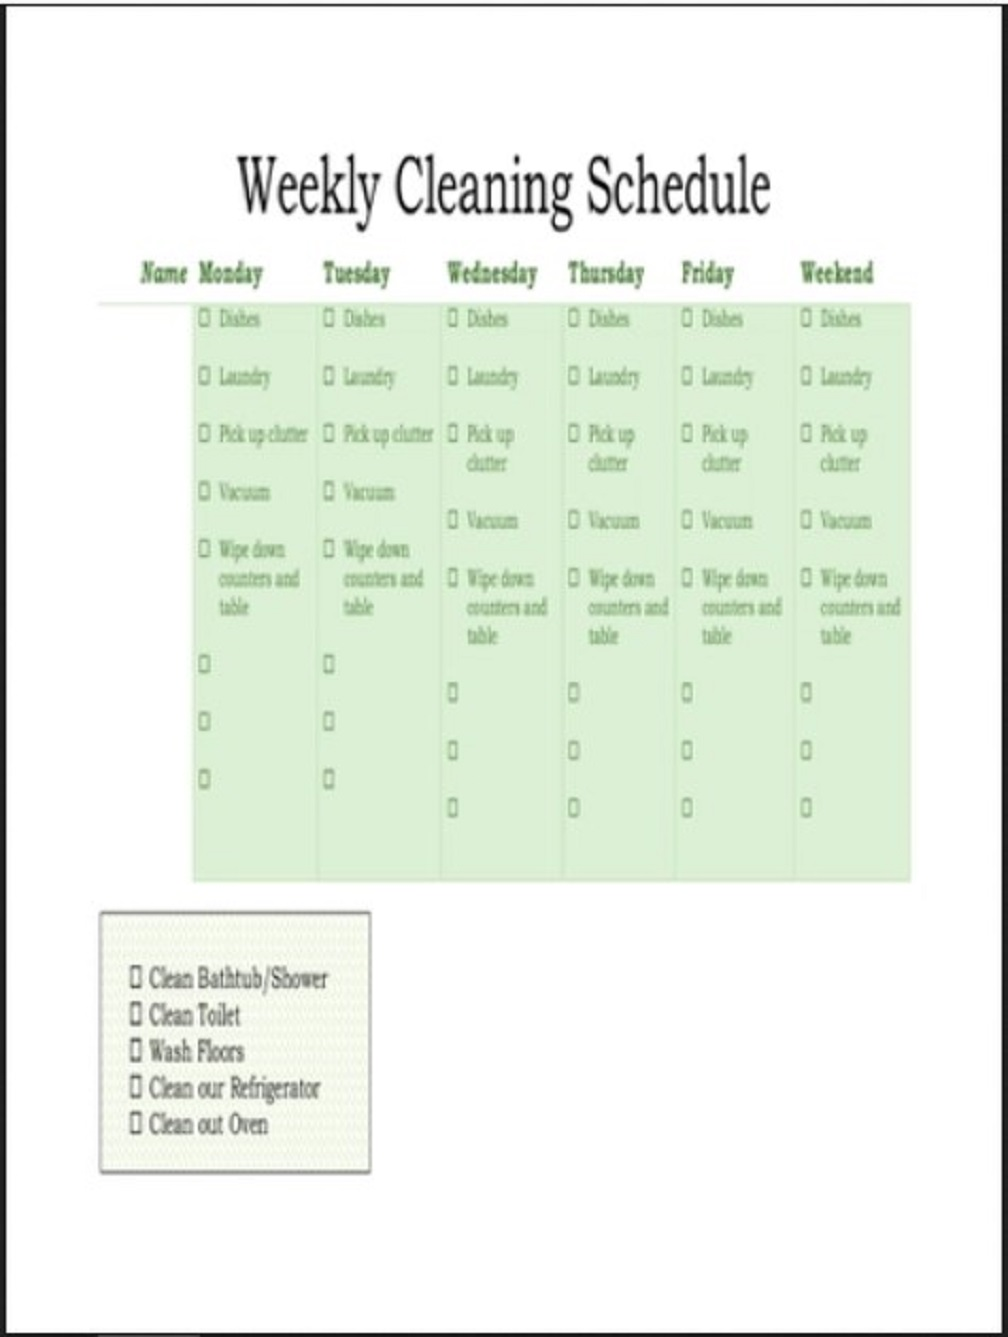 Weekly Cleaning Schedule Template Example Planner Printable Google Sheets Searches Related To Excel  Samples Large